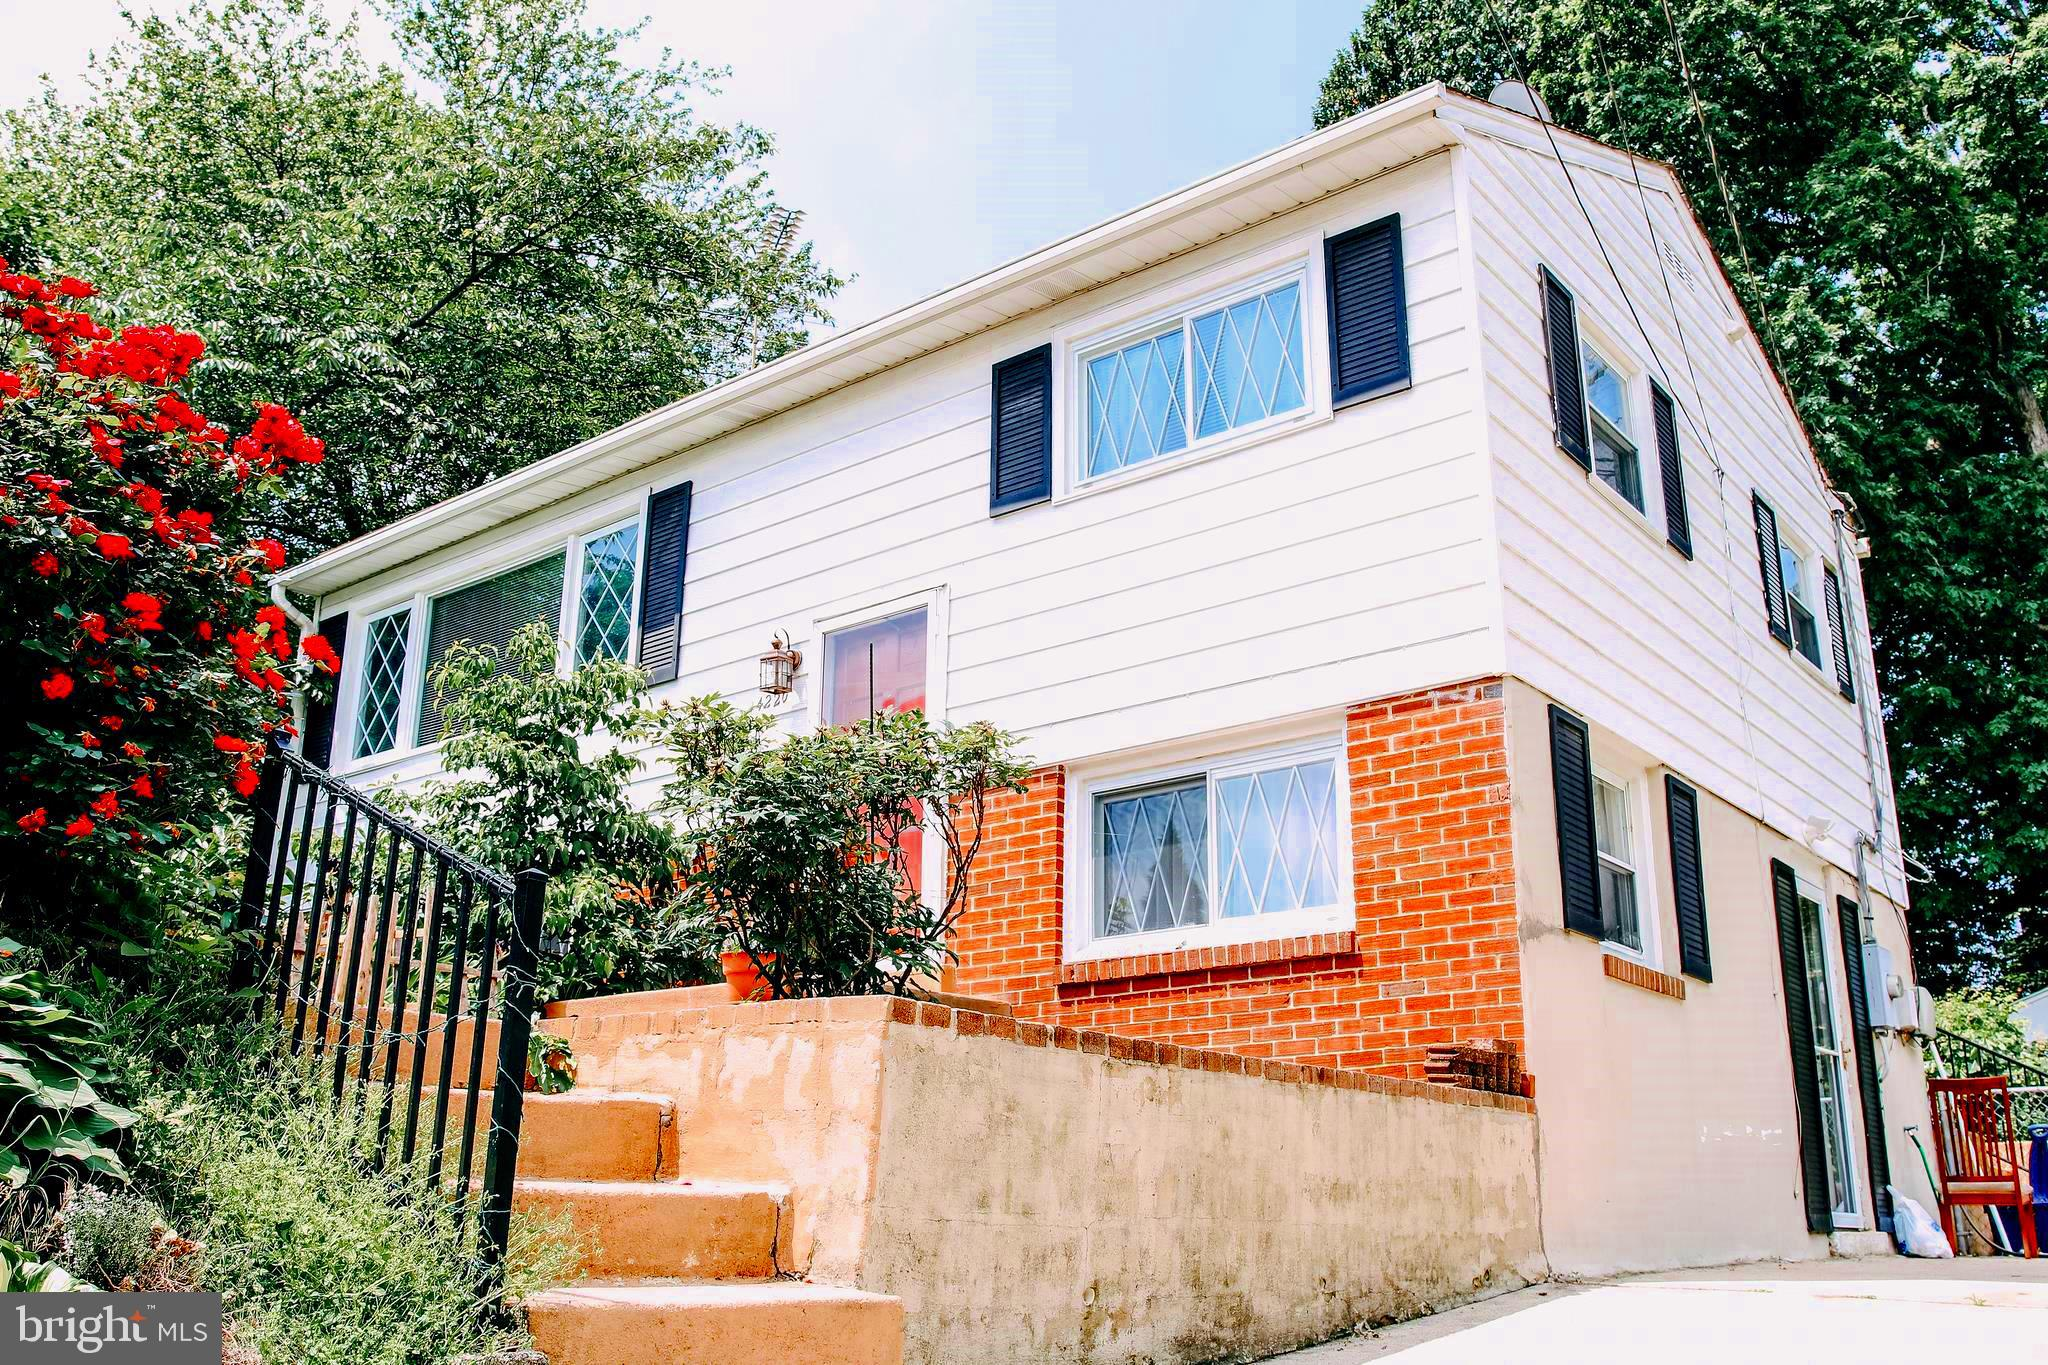 You'll LOVE this charming 3 bedroom, 2 full bath starter or retirement home! The chef will appreciate the remodeled kitchen featuring beautiful upgraded quartz countertops and backsplash, some newer appliances and easy maintenance ceramic tile floors which are throughout the entire main level too! The second floor retains the rich beauty of hardwood oak floors along with a great traditional floor plan. This home is located within a superb commuter area convenient to shopping, restaurants, Occoquan Bay Wildlife Refuge, Veteran's Park and Marumsco Acres Lake. Please stay posted for pictures coming soon of the spacious fenced backyard with fruit trees, flowers, patio and a shed too! Its a gardener's delight! Welcome Home!